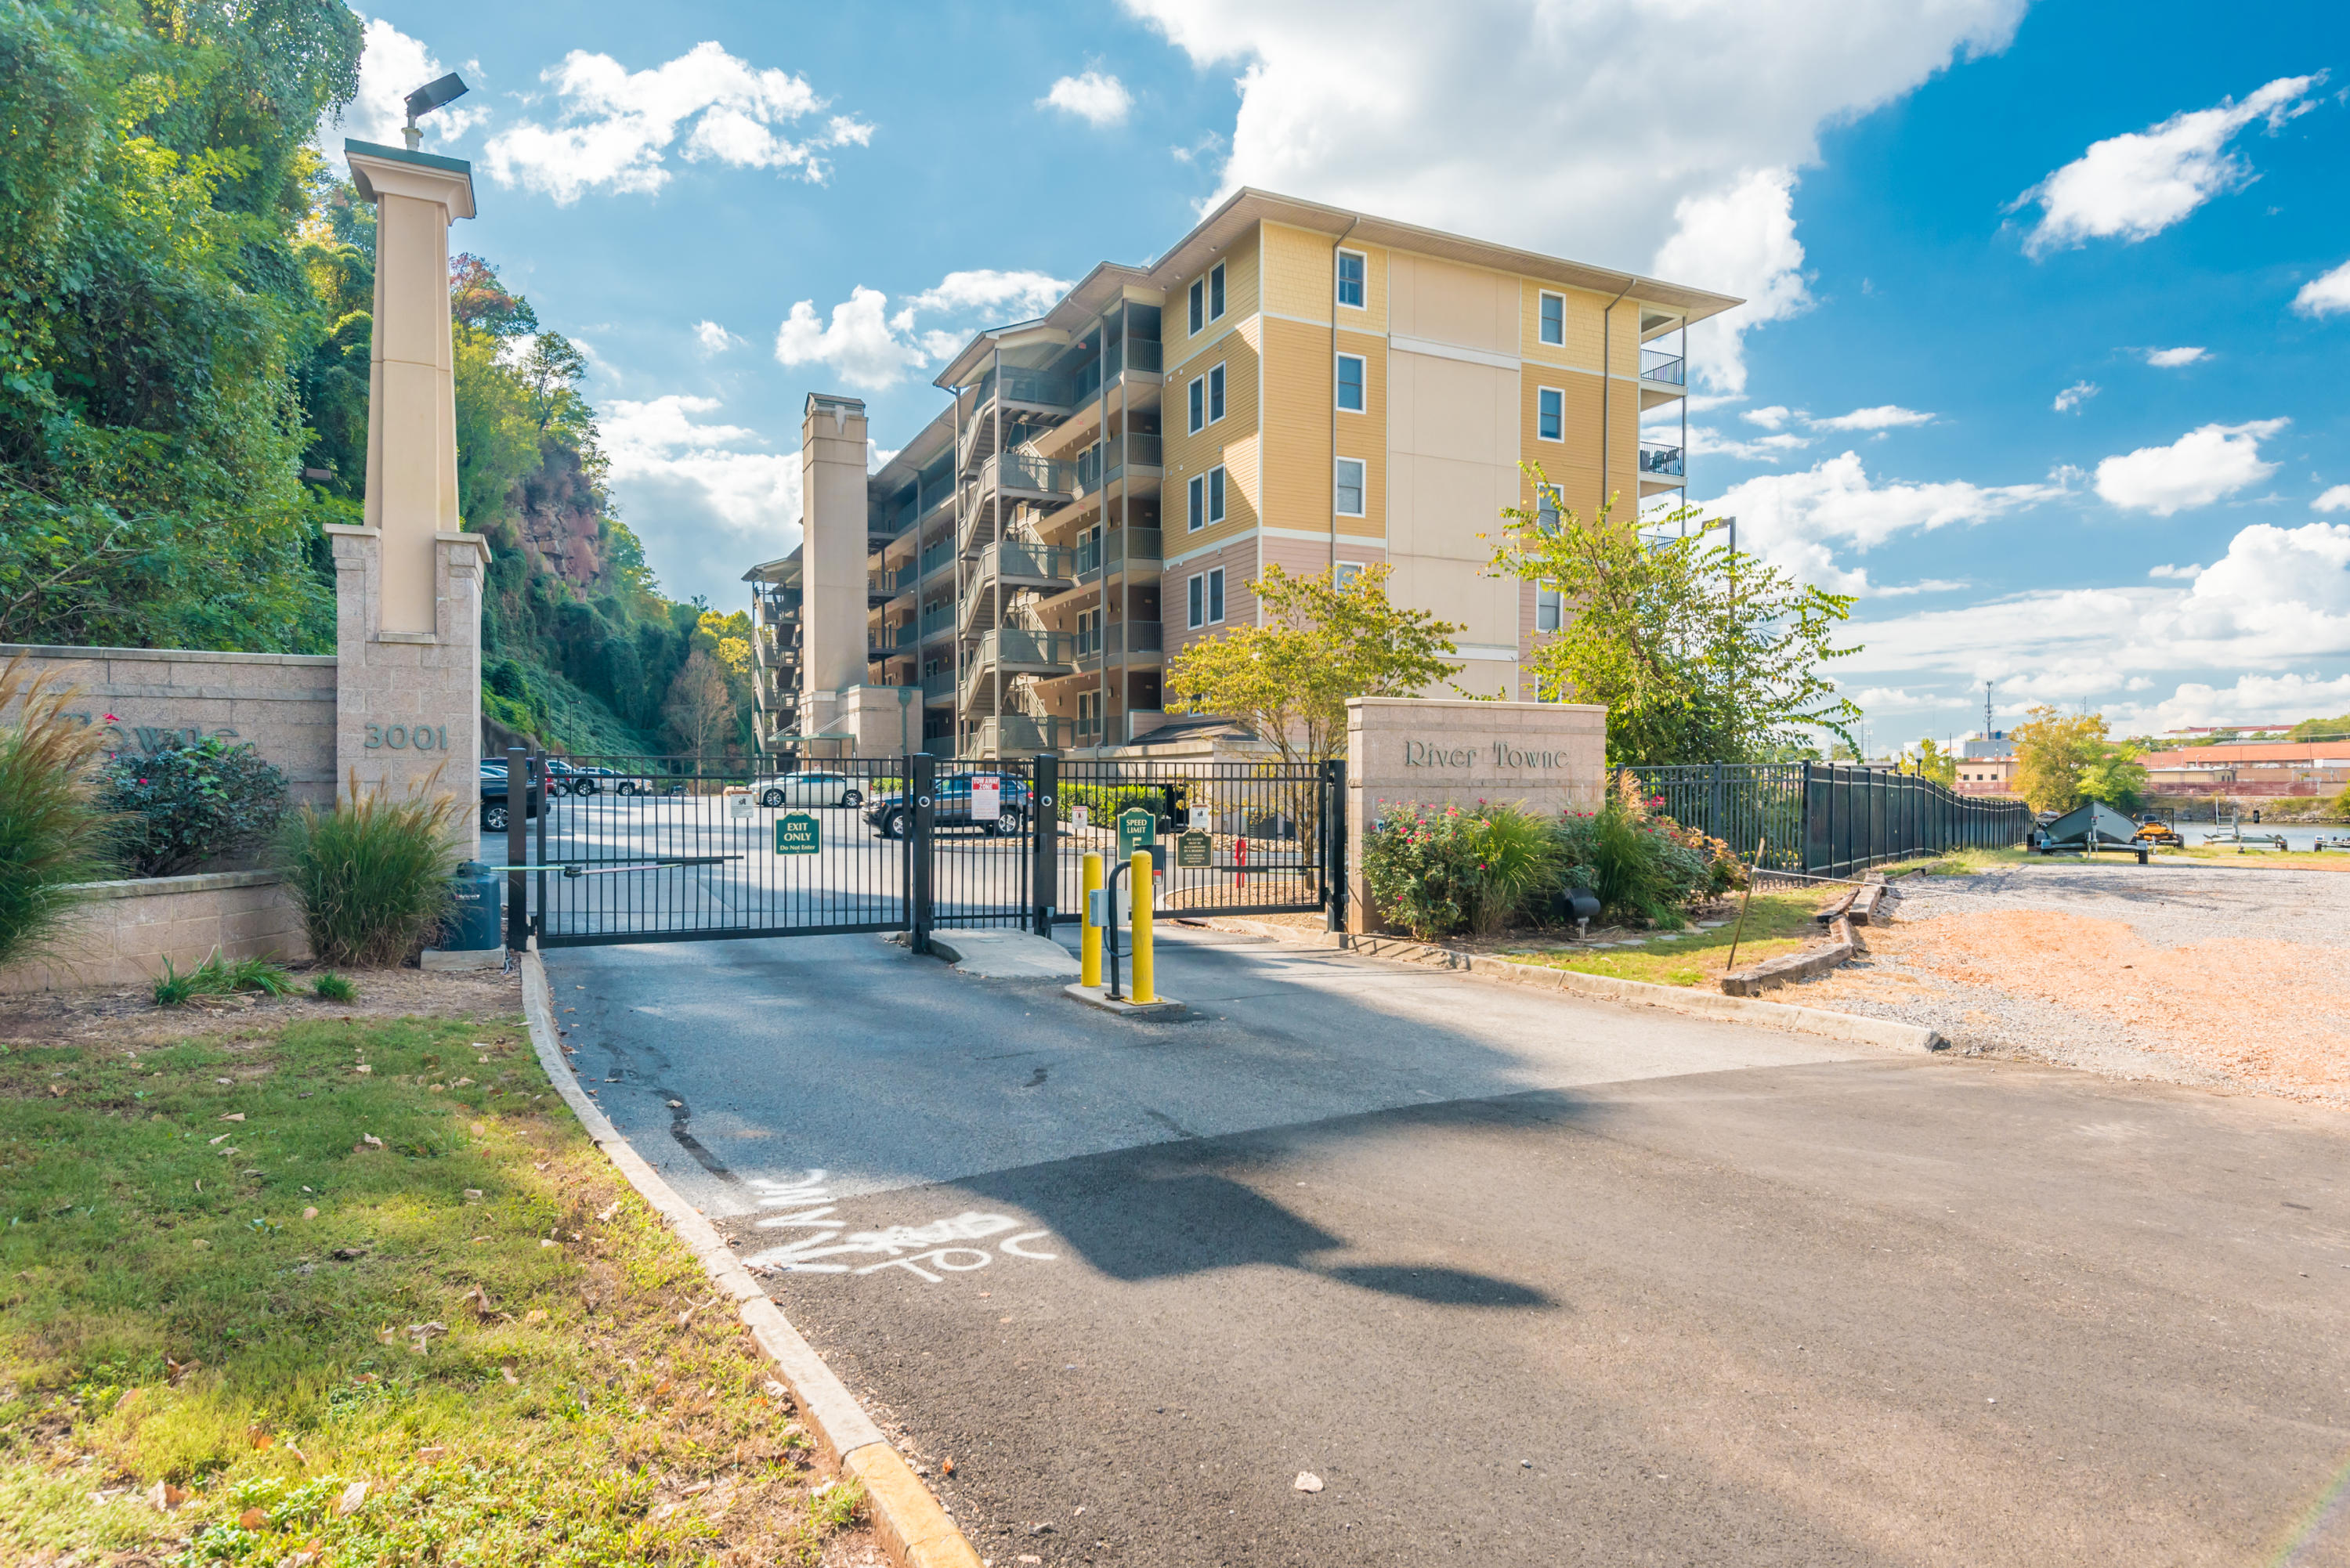 3001 River Towne Way Apt 109: